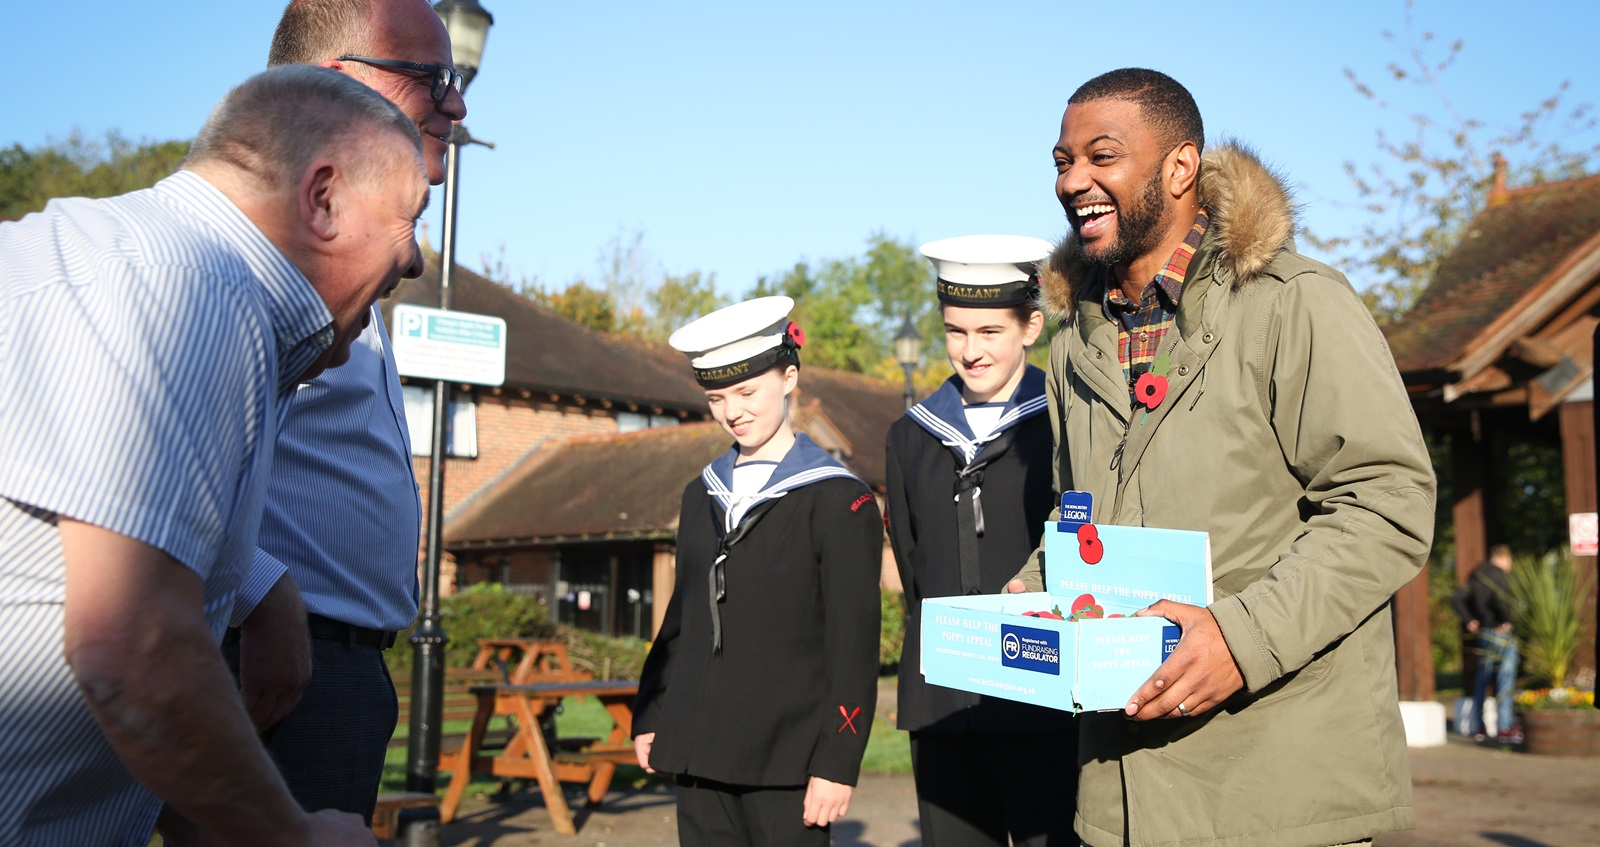 JB Gill undercover as a poppy collector